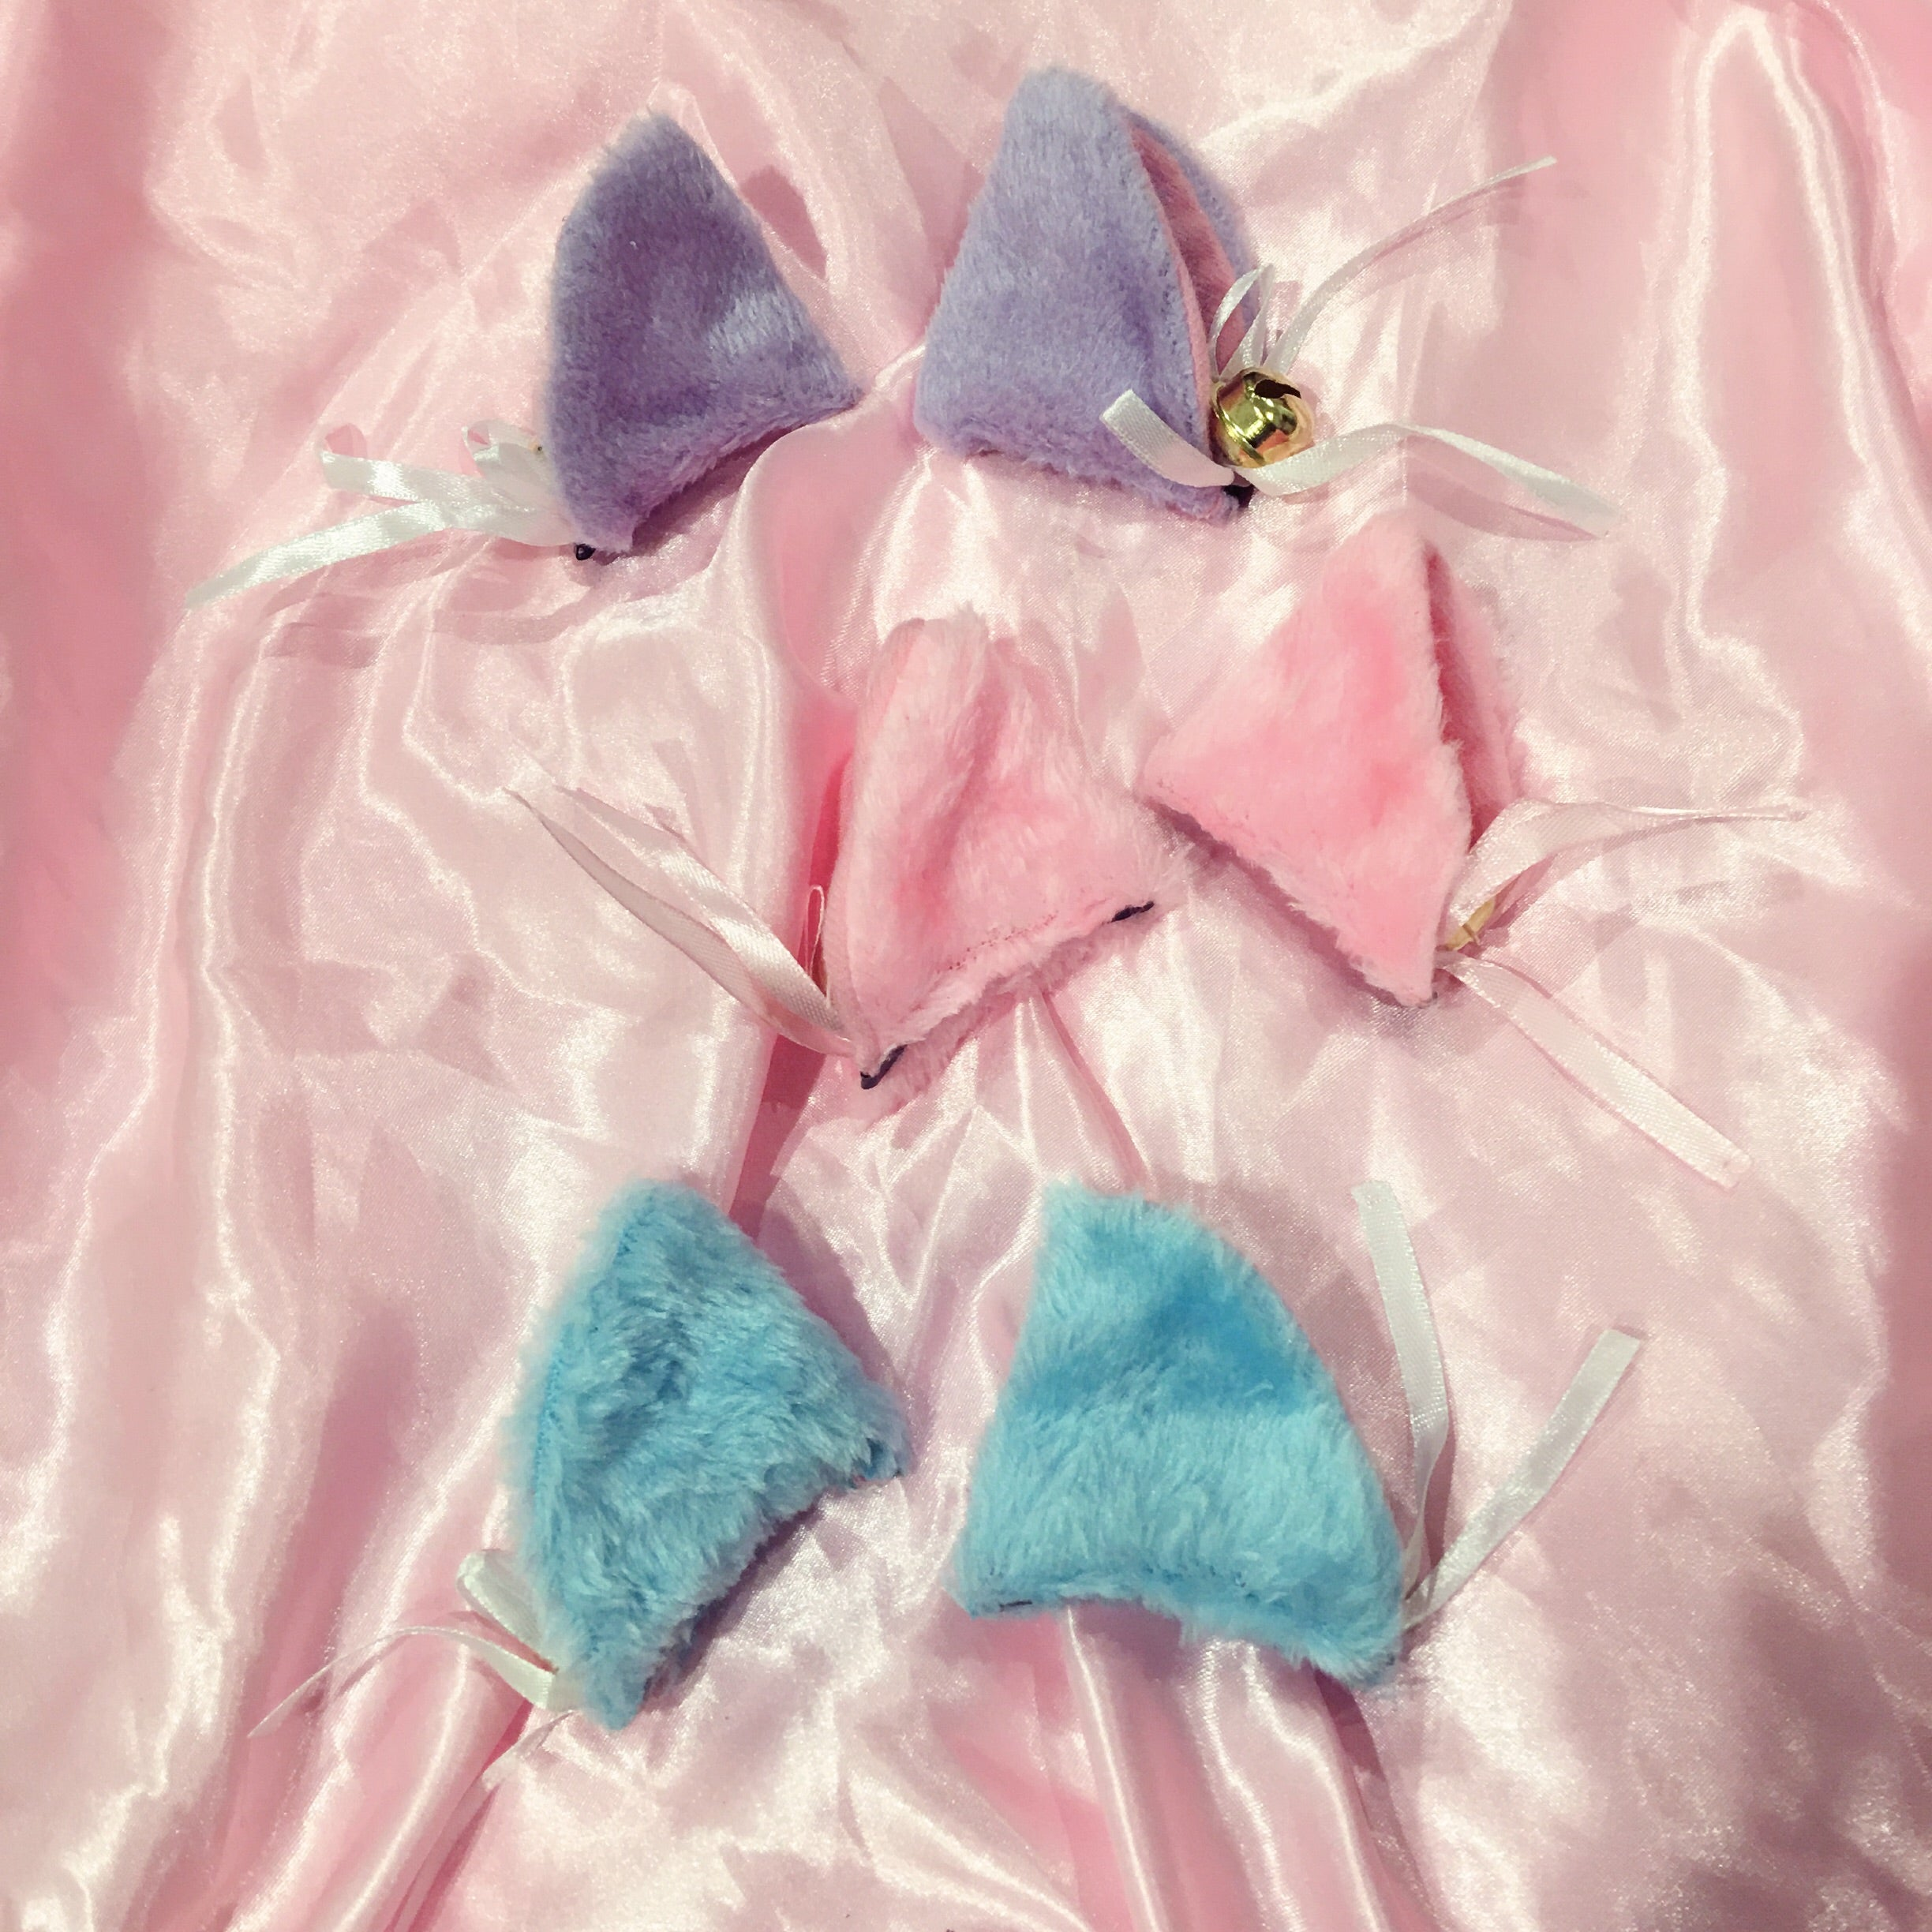 purple kitty ears kitten petplay fashion accessories hair clips pink aqua blue fur bells bows silk cute at BABY VOODOO